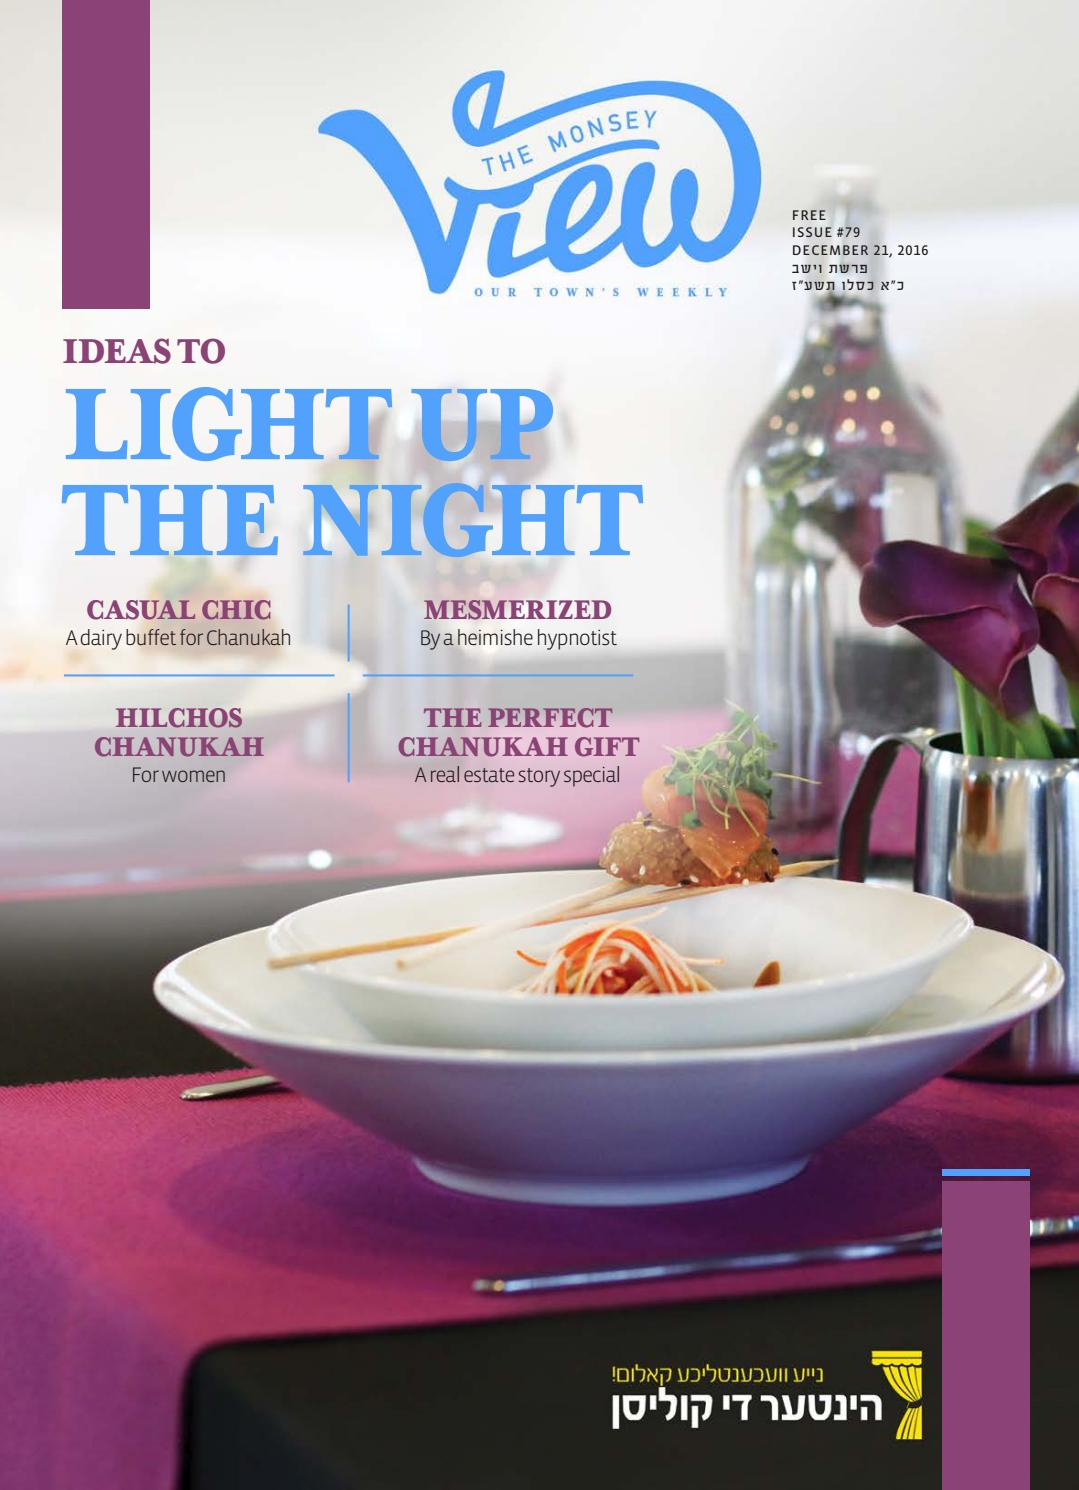 Issue 79 by The Monsey View - issuu ee95bb122